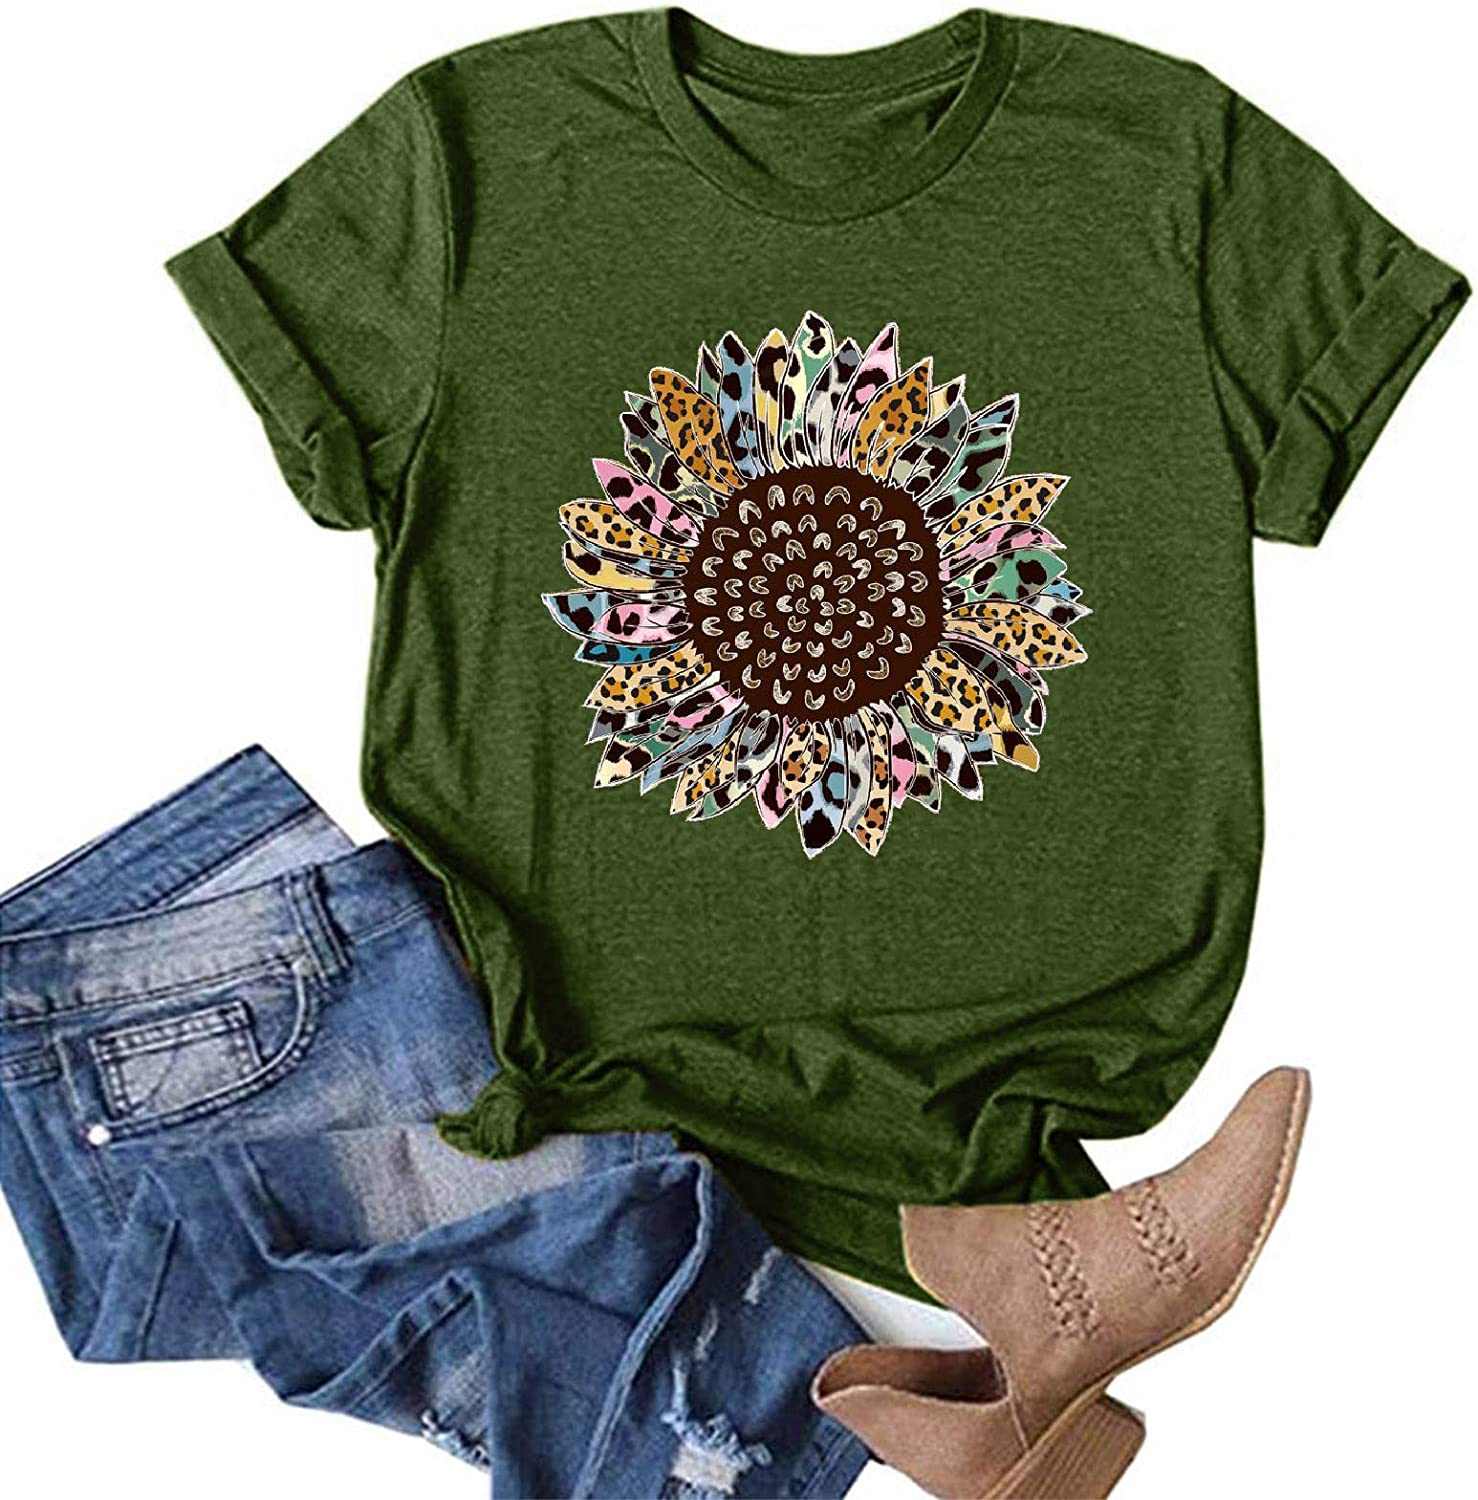 AODONG T-Shirts for Women,Women's Summer Tops Funny Graphic T-Shirts Floral Printed Casual Loose Blouses Tunic Tees